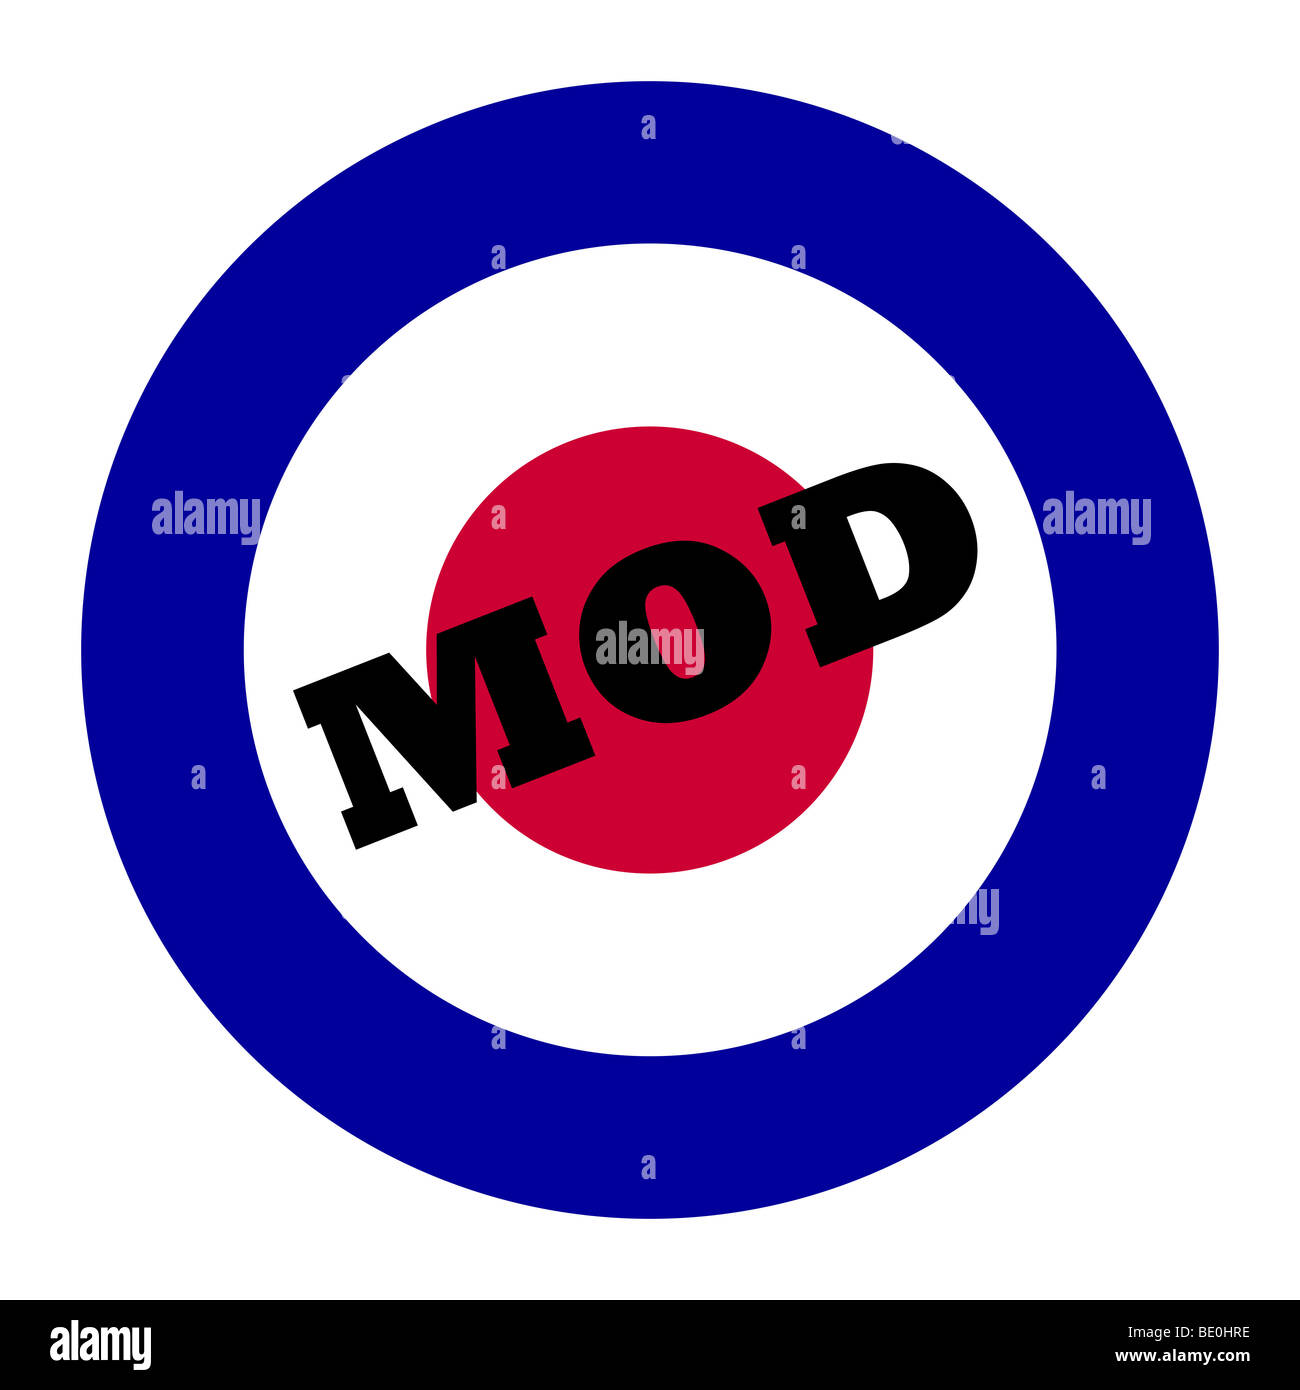 British Royal Air Force roundel, also used as symbol of mod music. - Stock Image